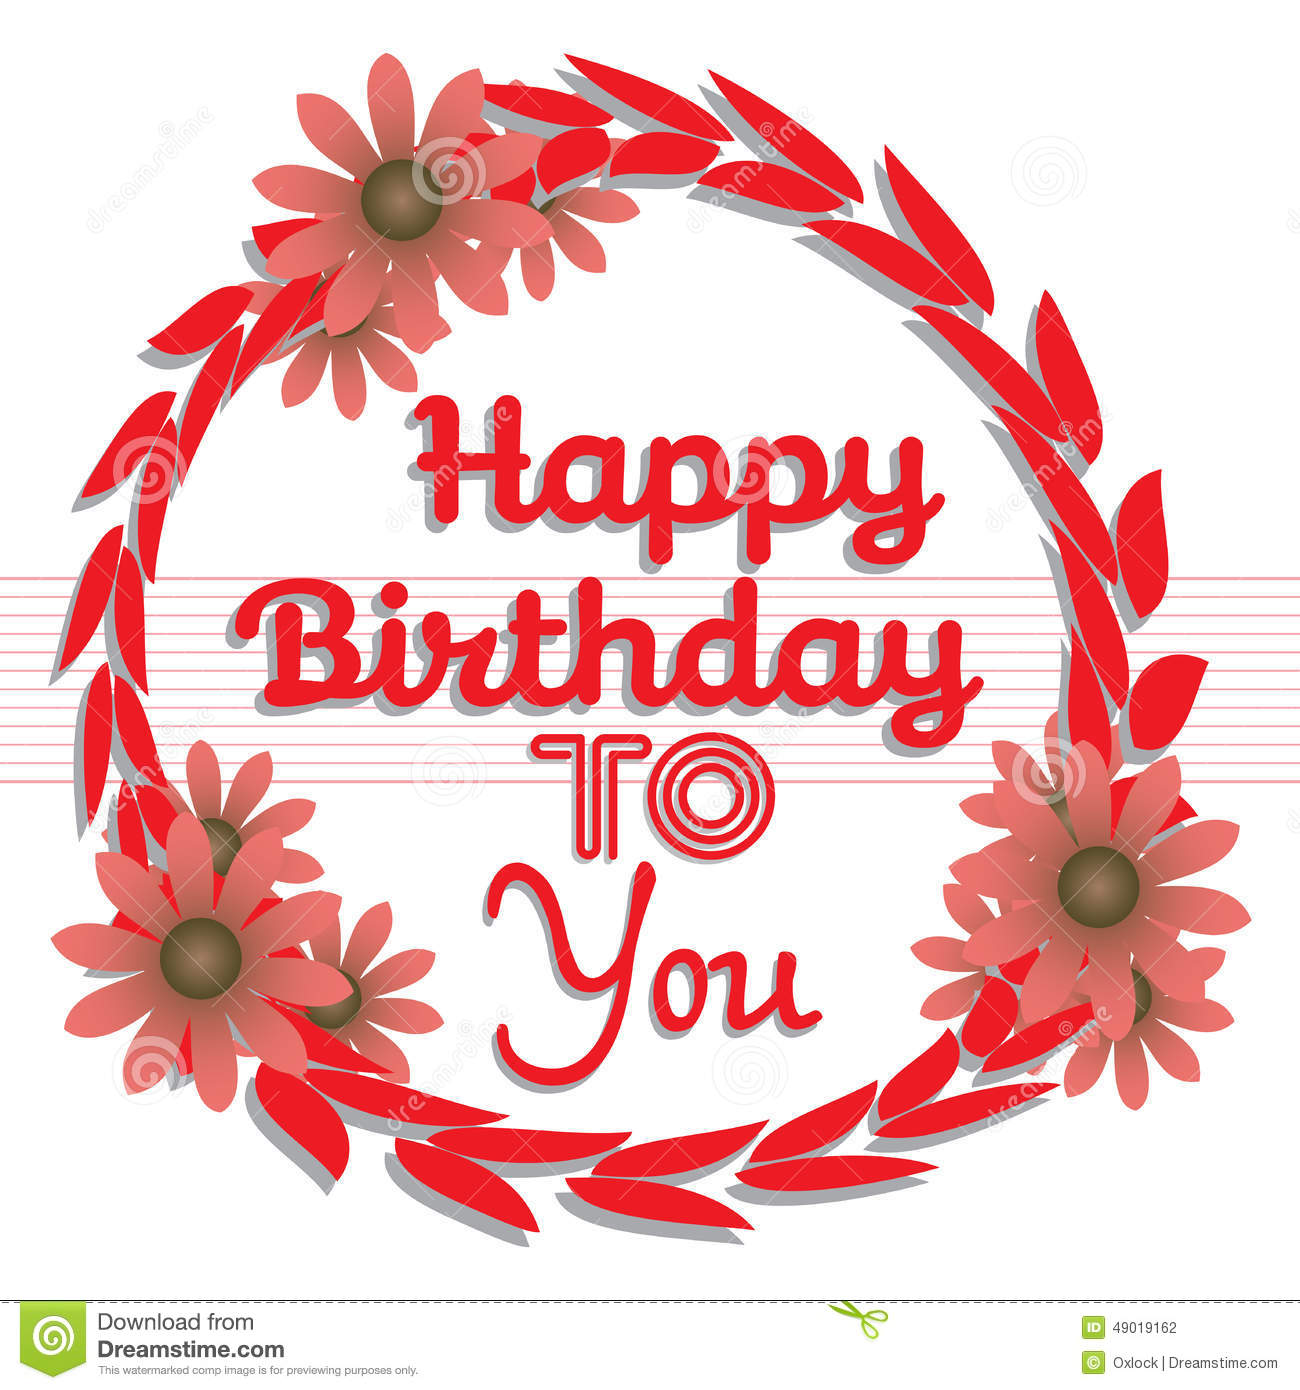 happy birthday to you pic ; happy-birthday-to-you-abstract-colorful-background-red-flowers-text-written-red-letters-49019162